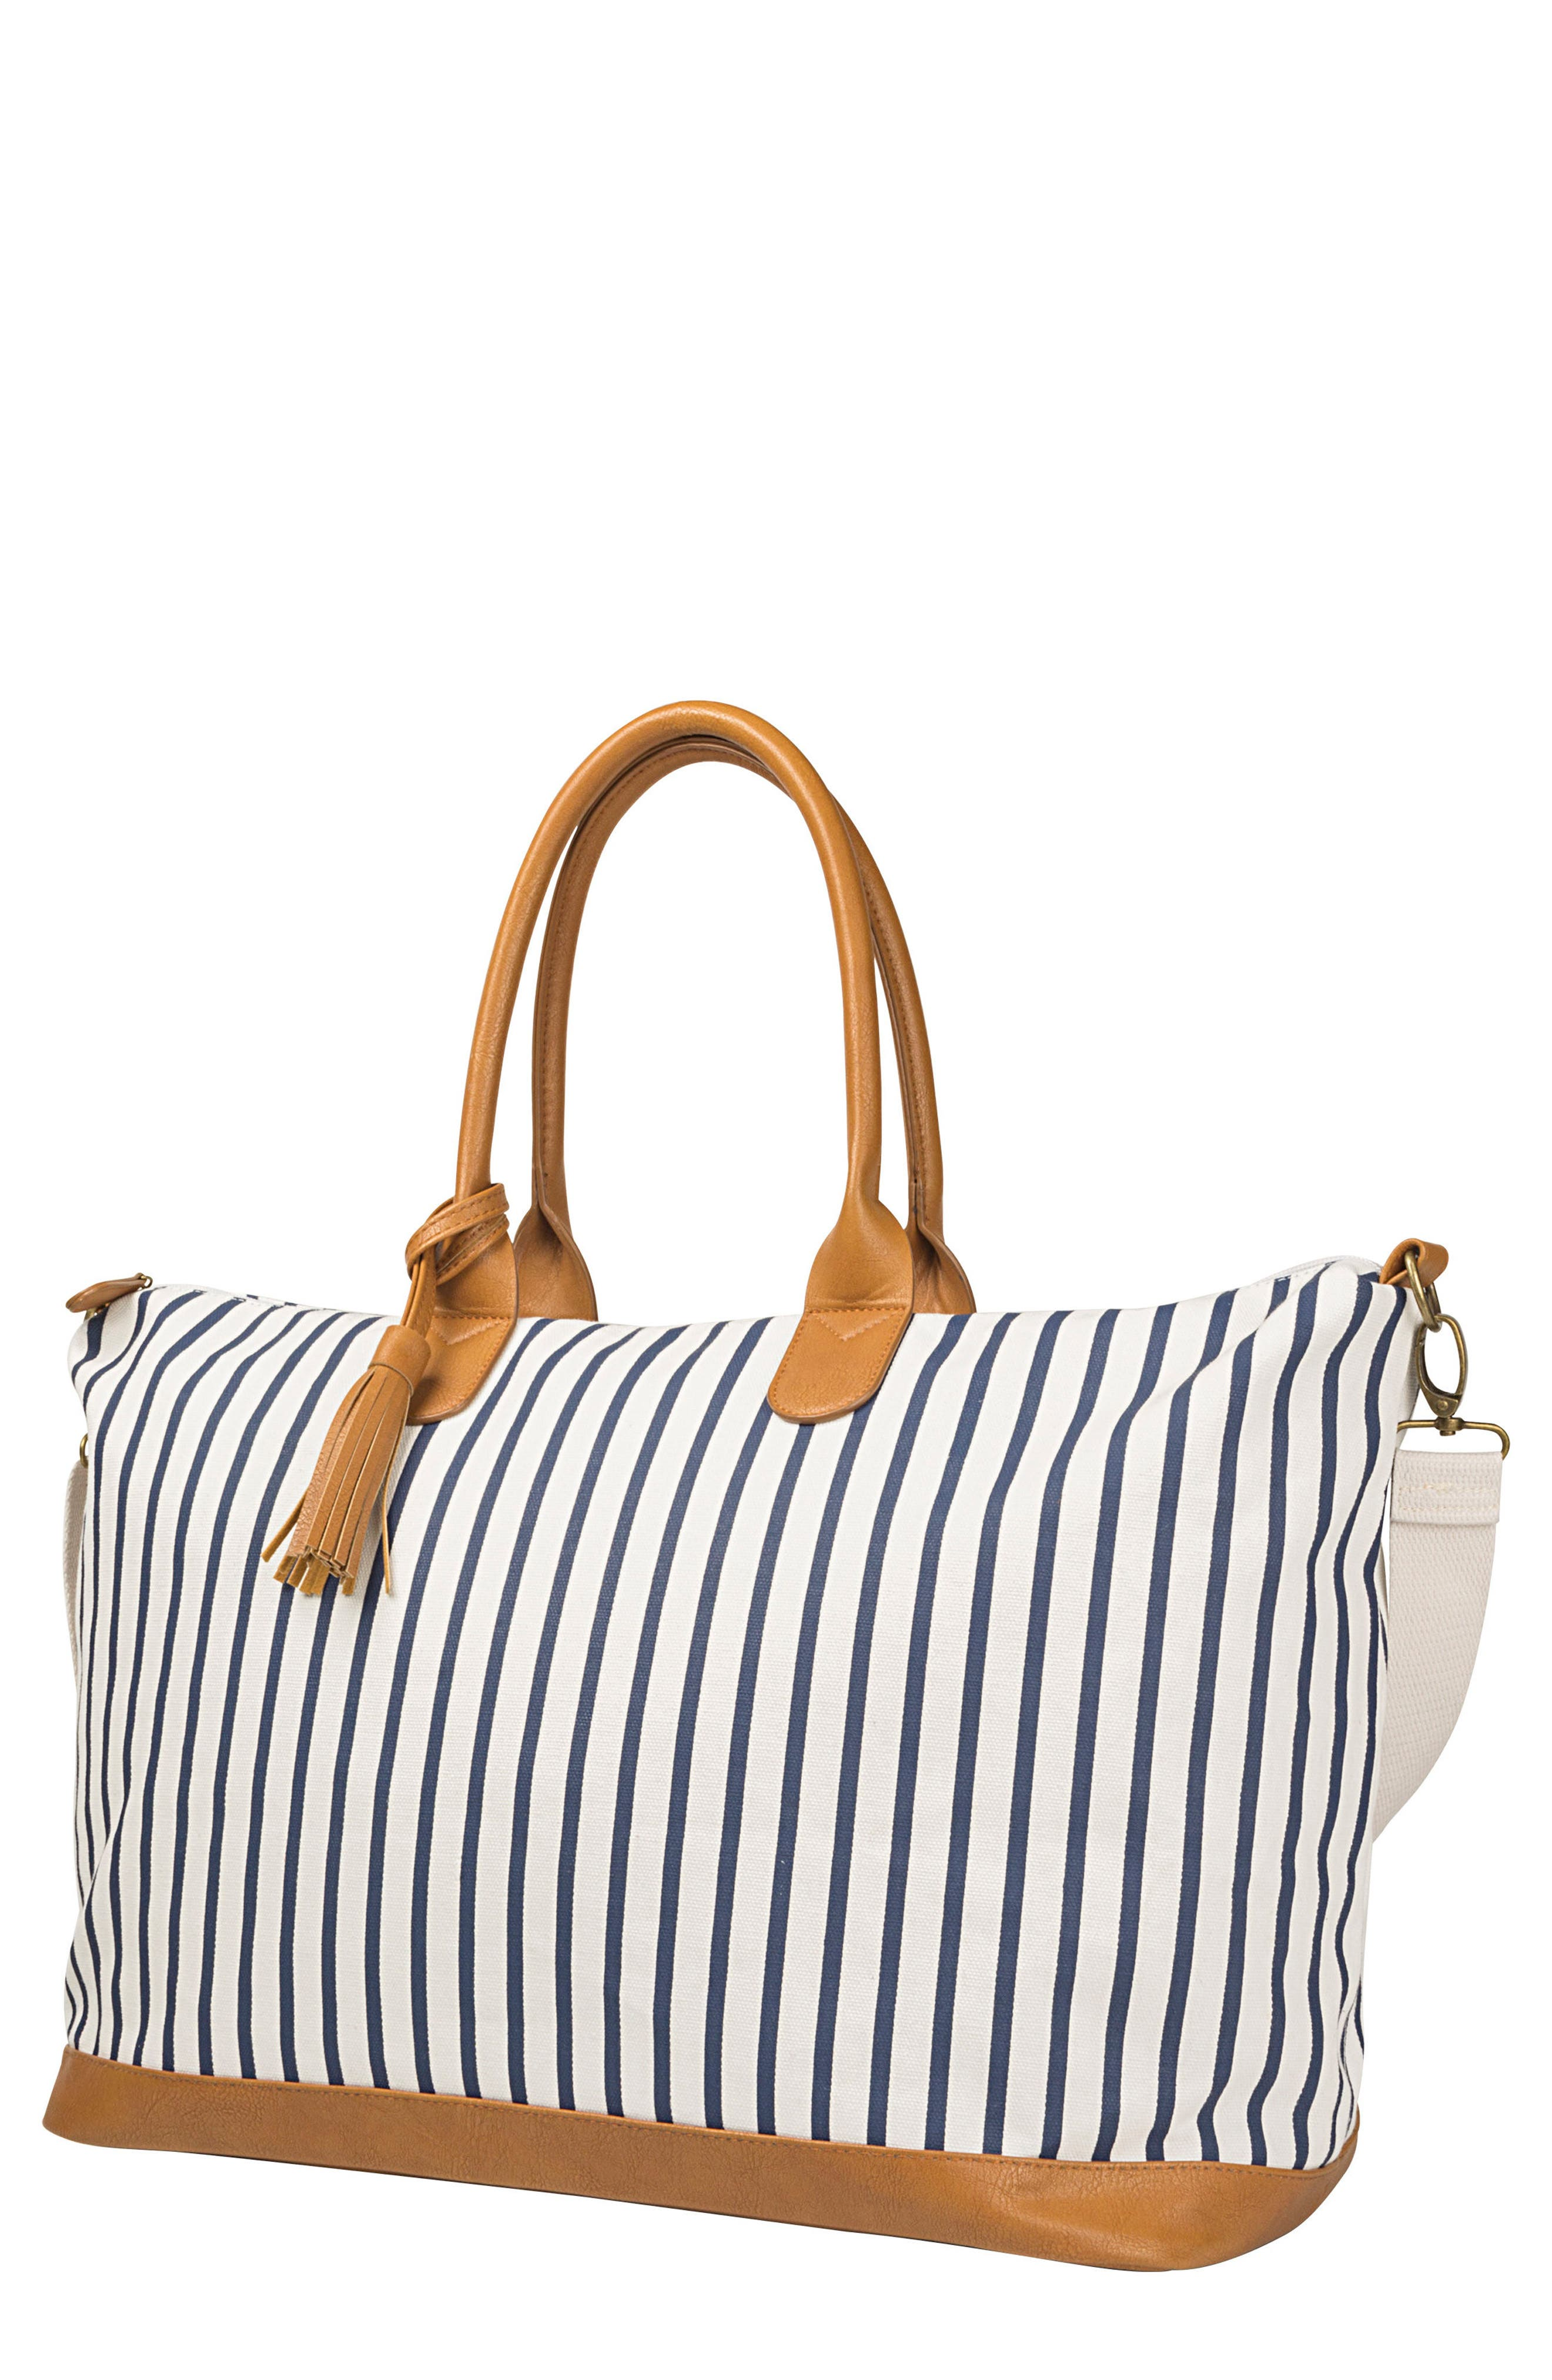 CATHY'S CONCEPTS, Monogram Oversized Tote, Main thumbnail 1, color, BLUE